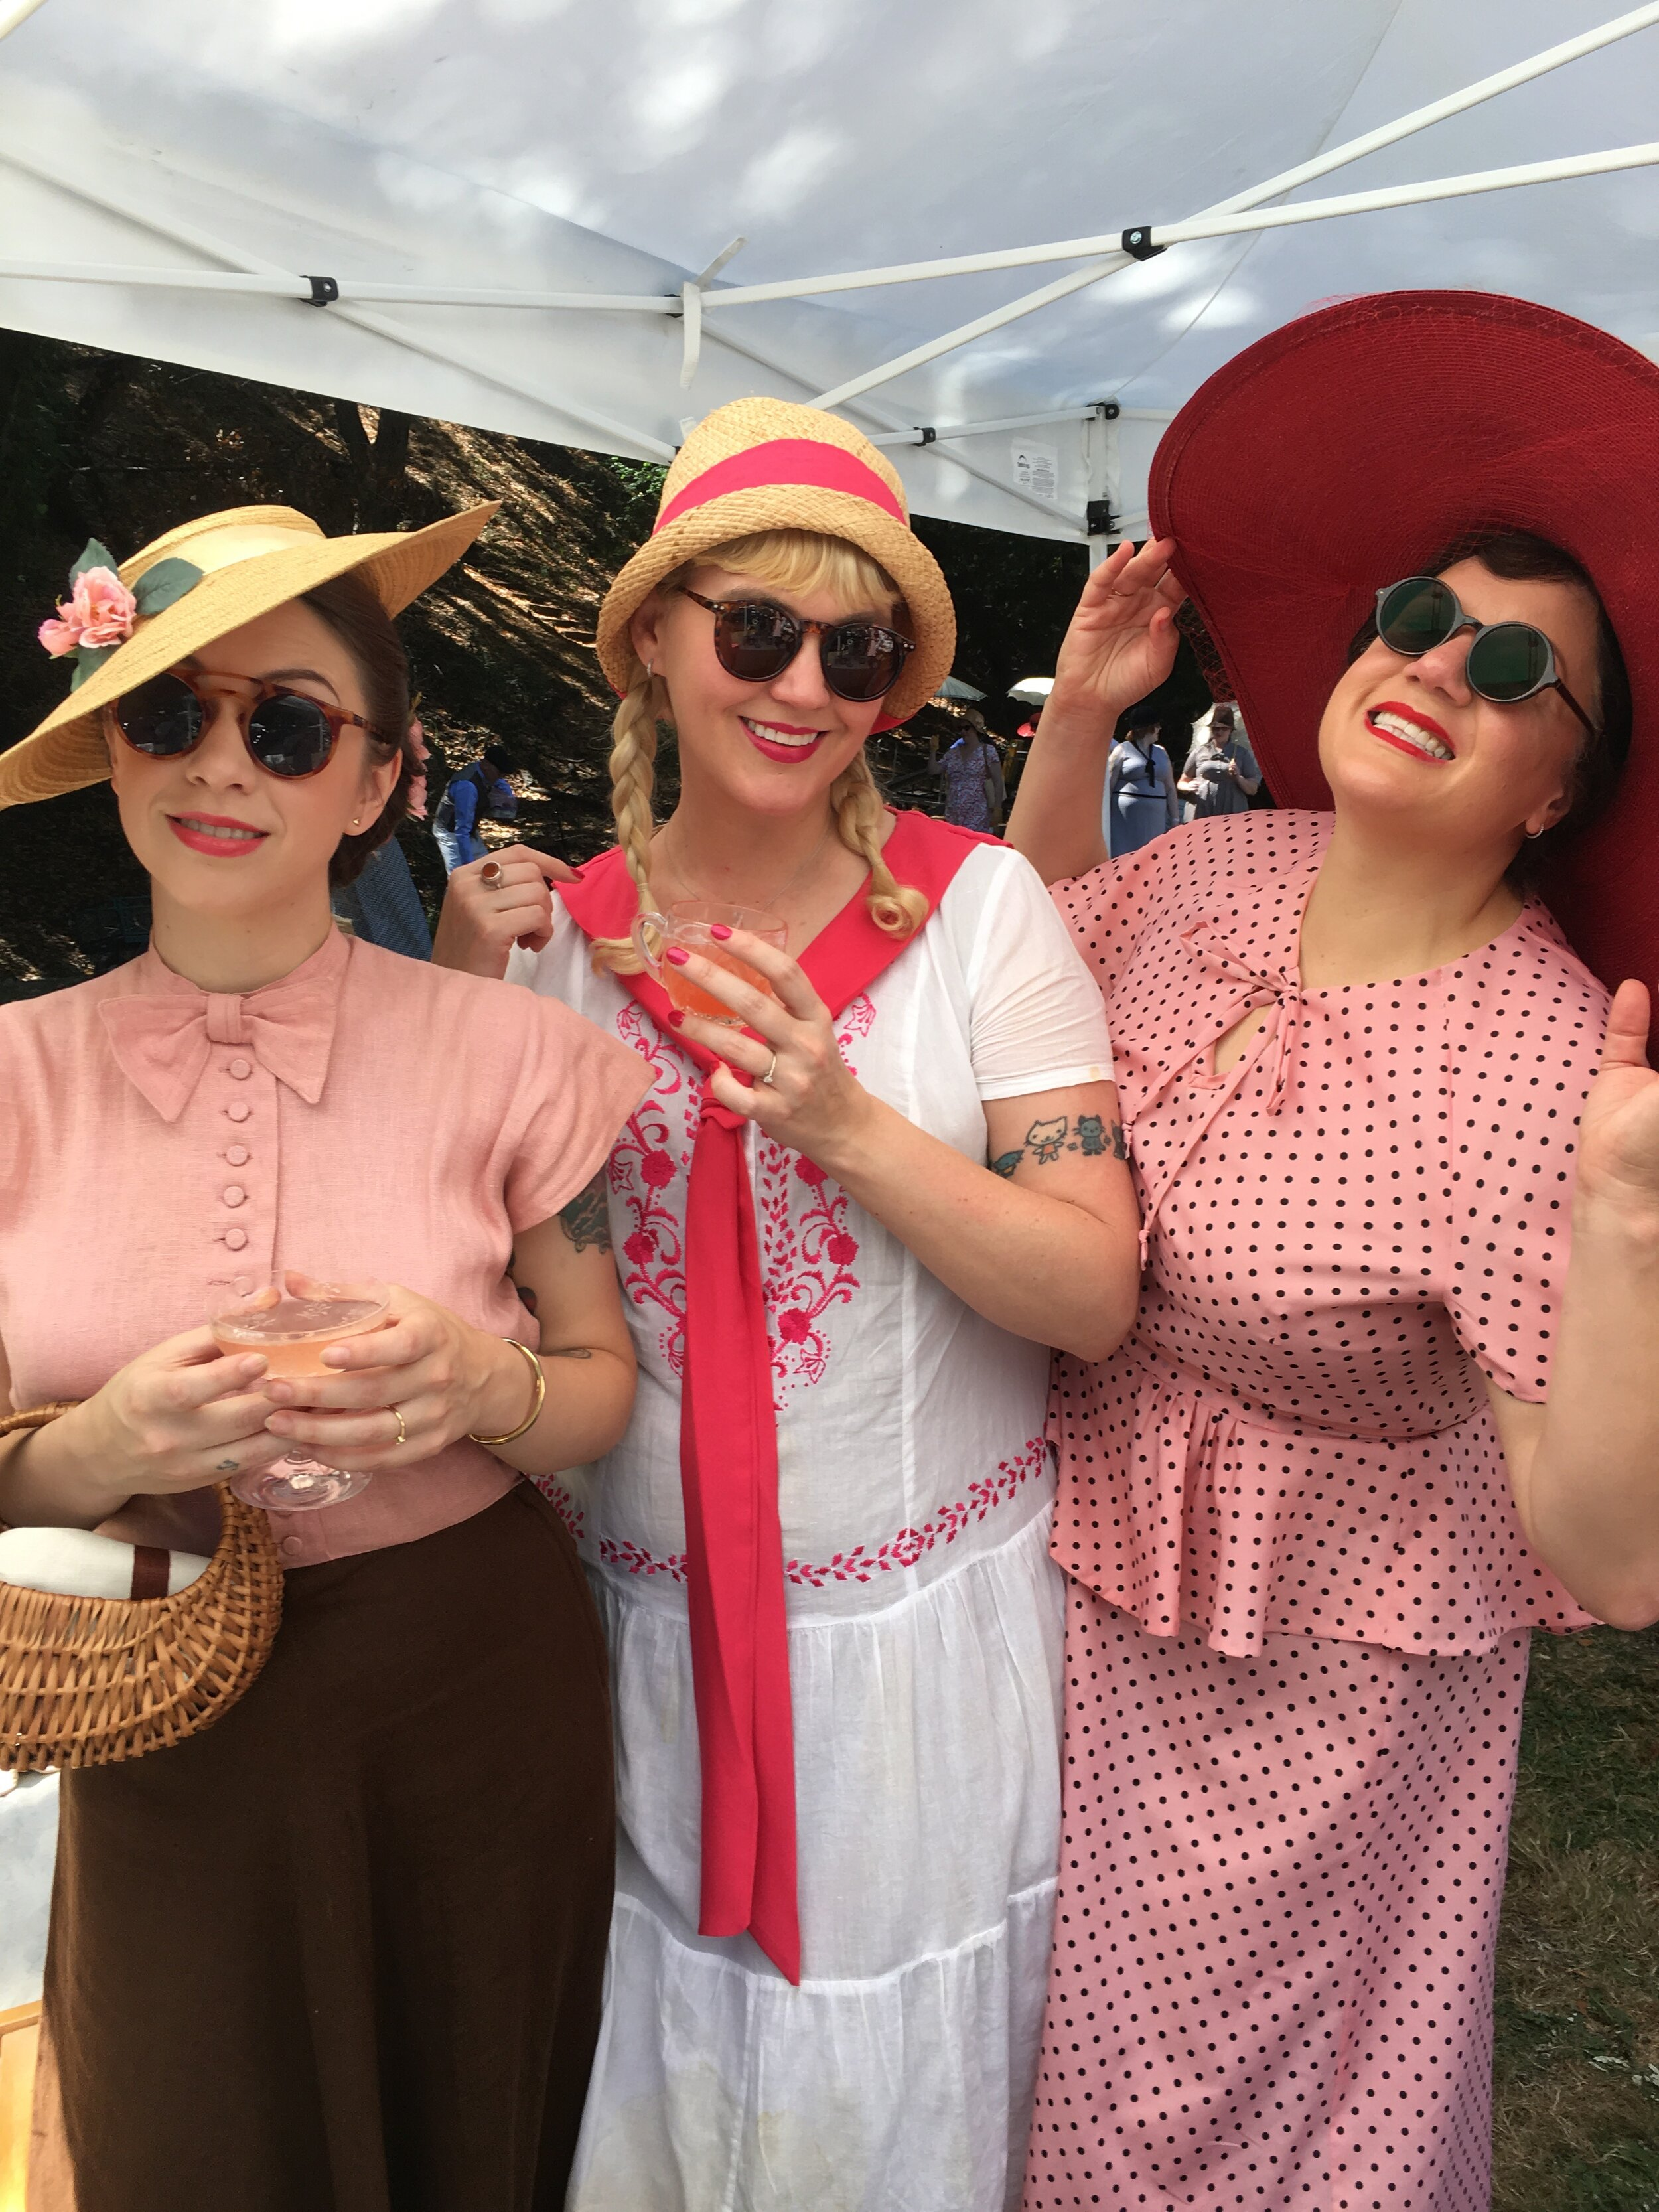 Brie, Taggy Lee & Dottie - So fabulous and Pink!